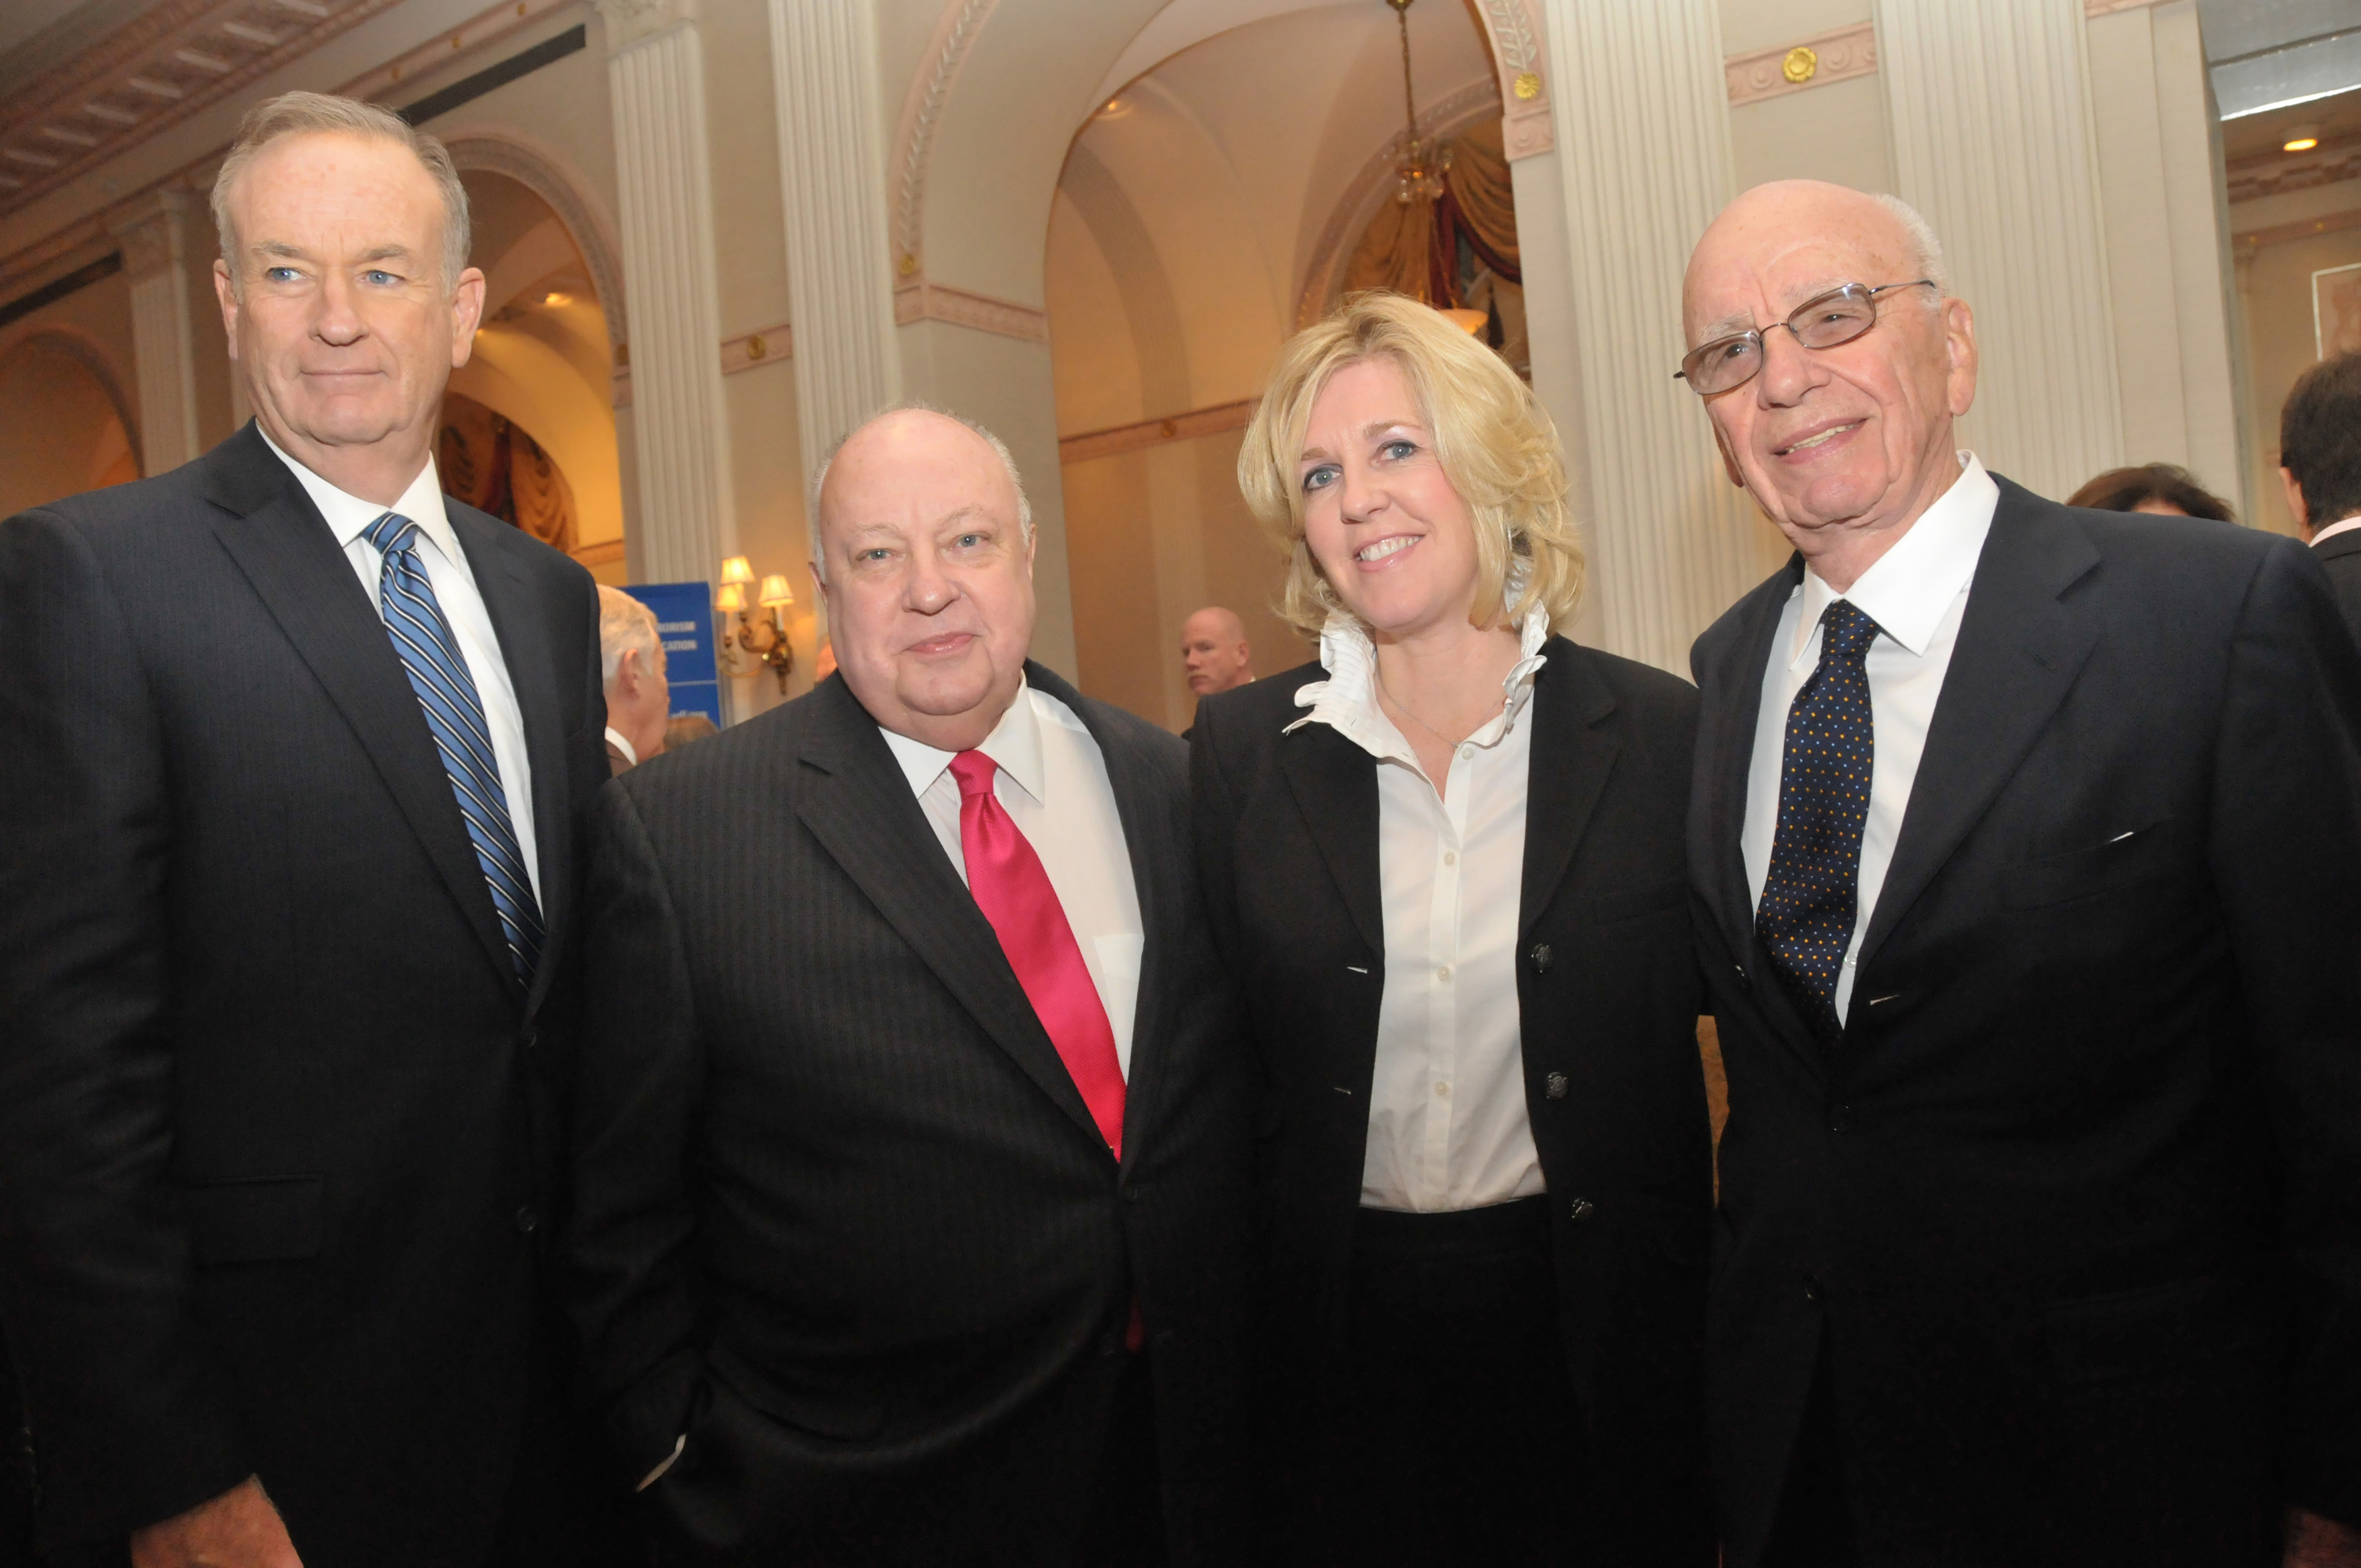 O'Reilly, Roger Ailes And Wife Elizabeth, And Ruper Murdoch